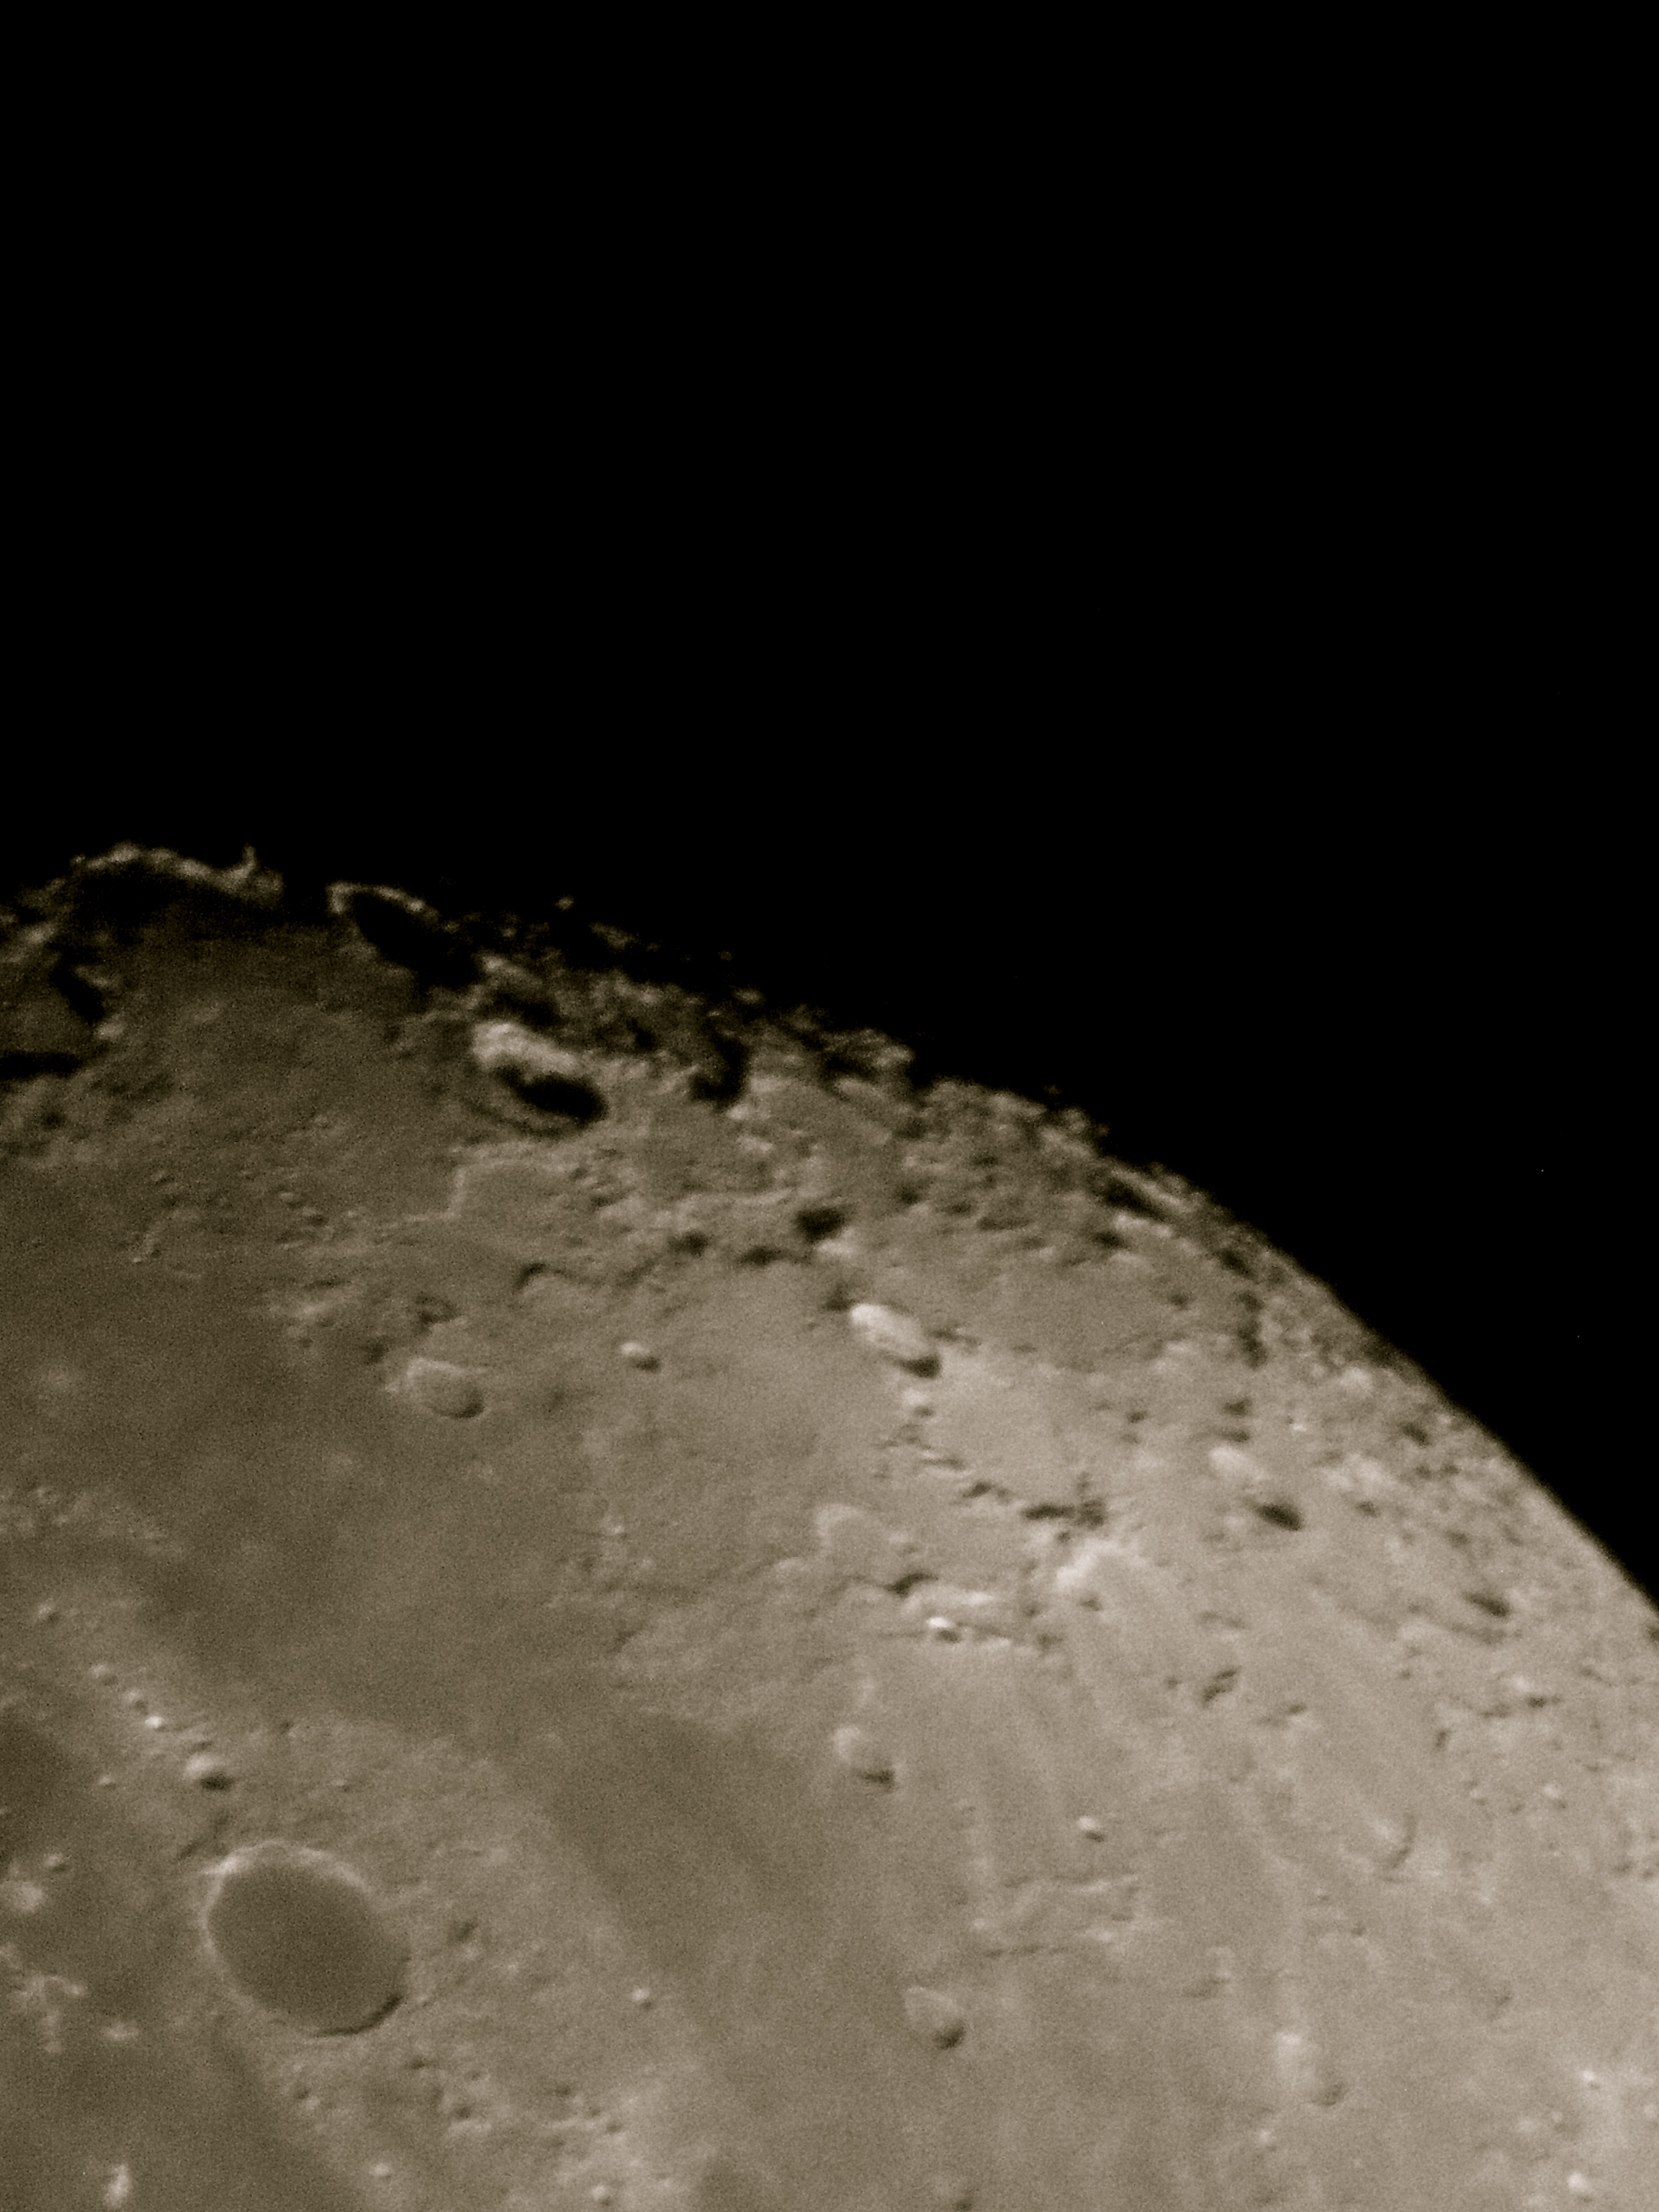 The north-central portion of the moon. The smooth dark crater on the lower left is Plato, and the deeply-shadowed crater with the bright rim far to the north is Philolaus.